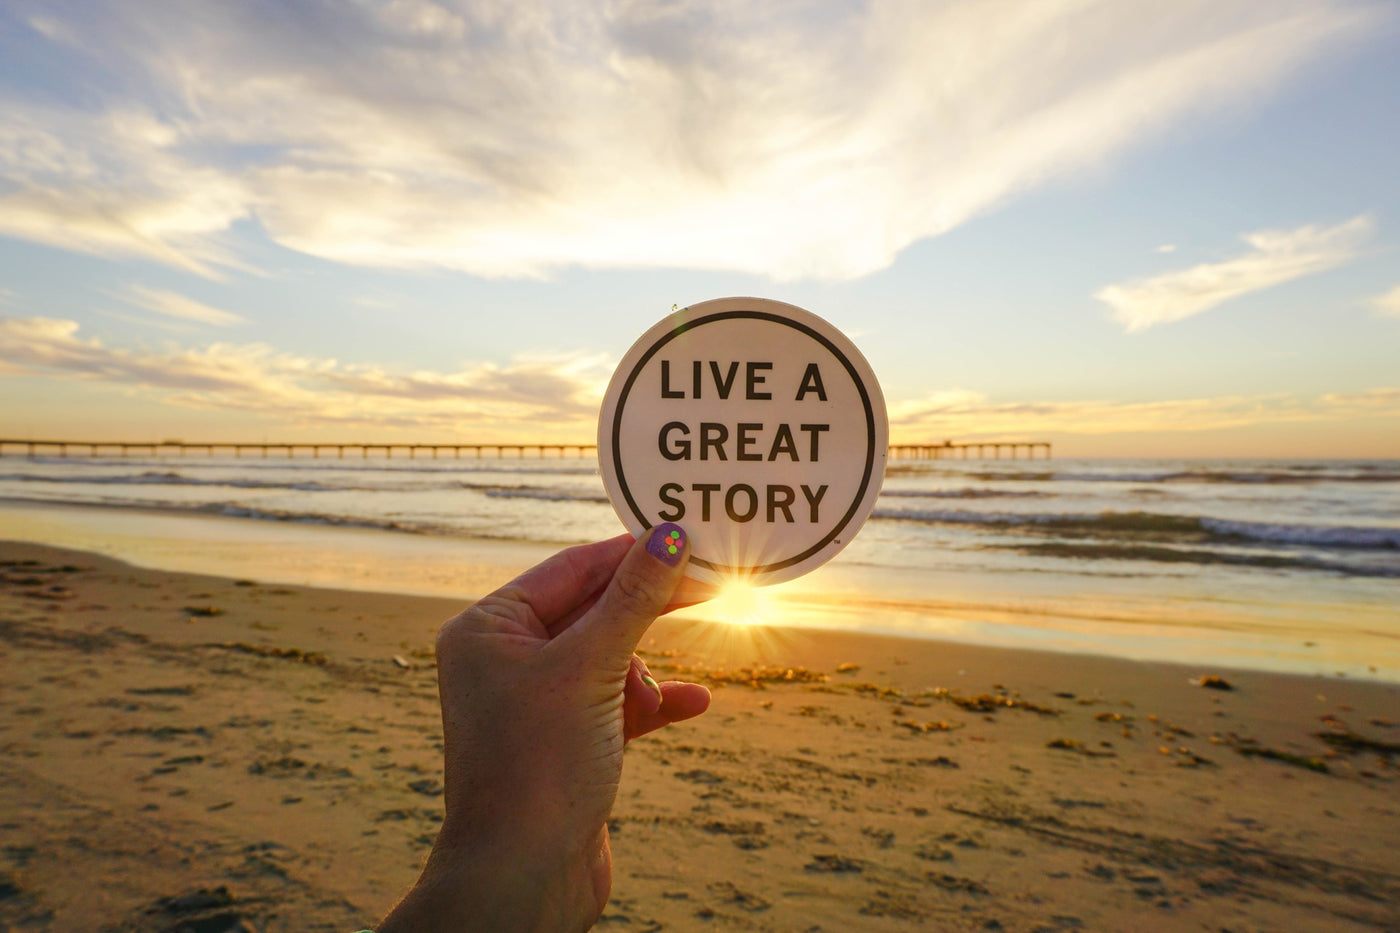 Girl with Cute Nails holding inspiring LIVE A GREAT STORY Sticker at the Beach in California